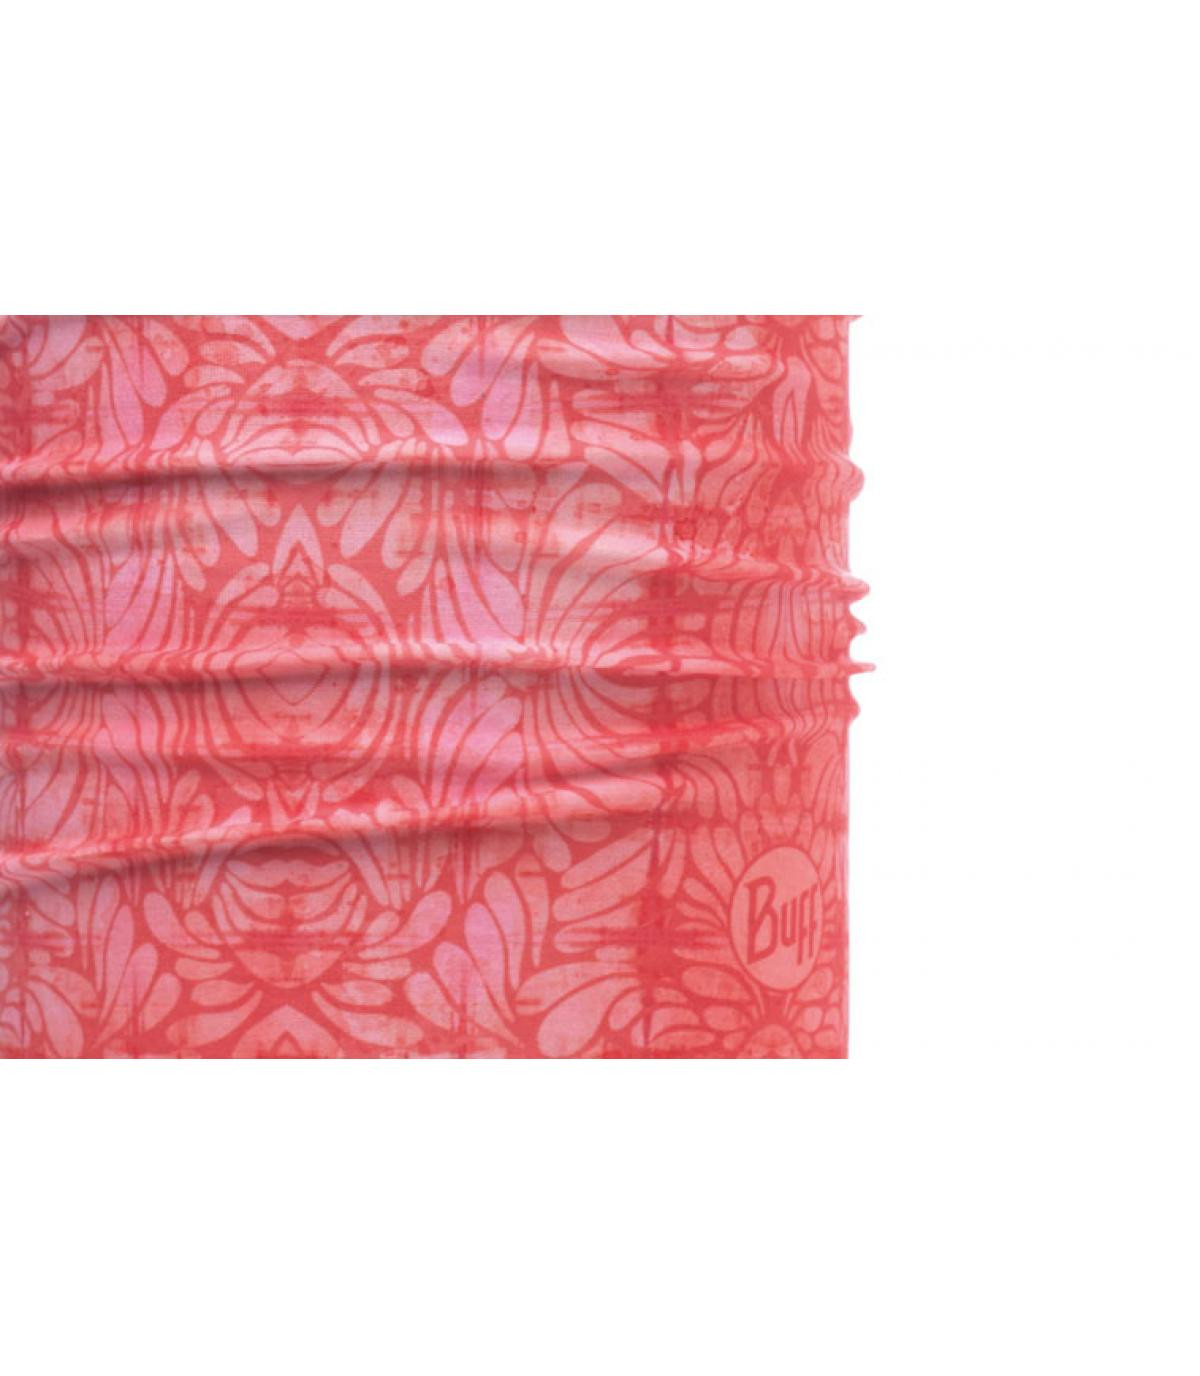 Details Active calyx salmon rose - afbeeling 2